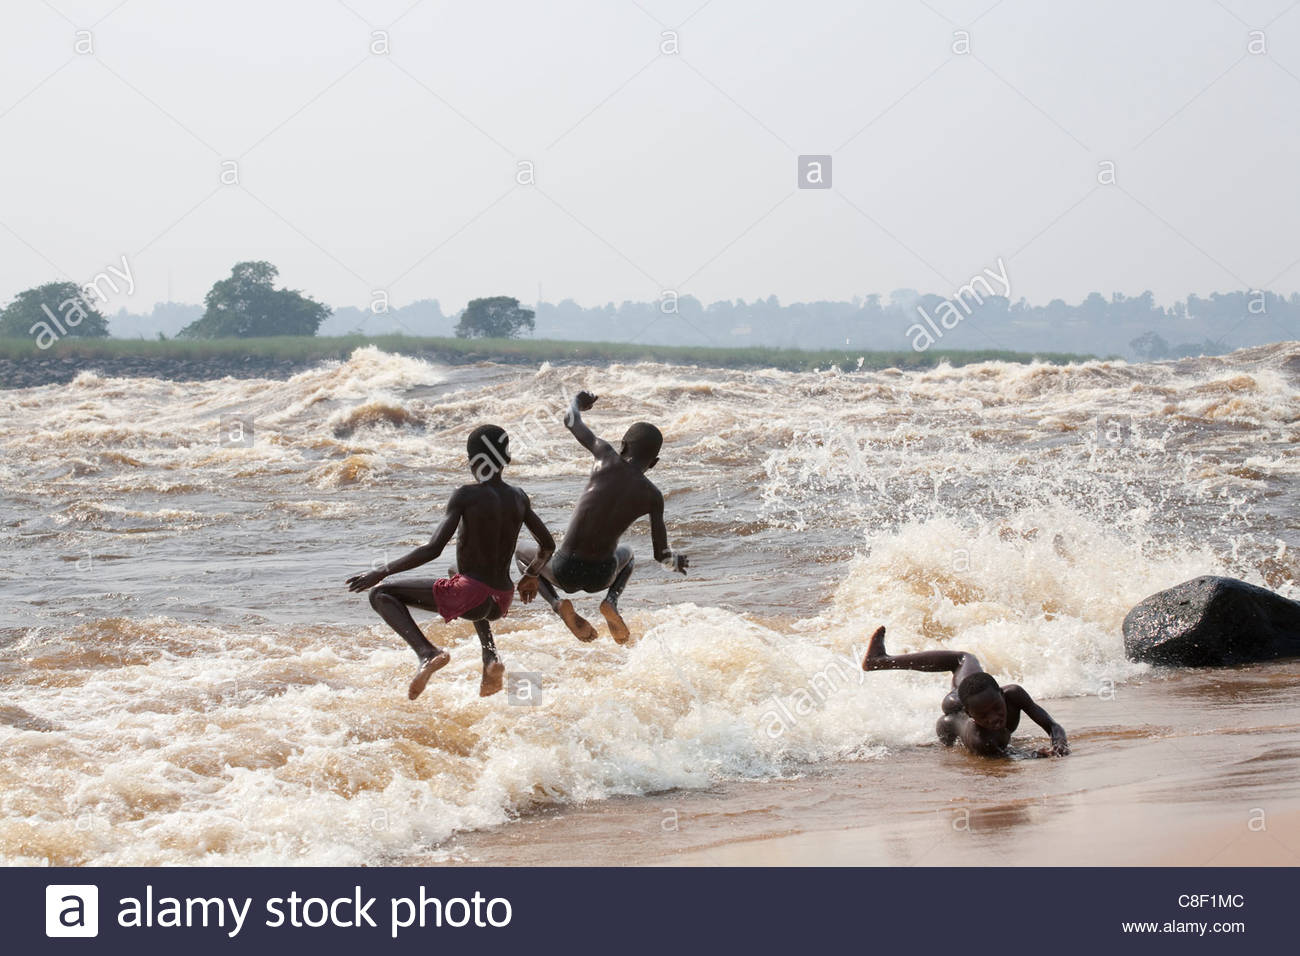 Young Congolese boys at play along the Zaire River at Kinsuka Rapids. - Stock Image